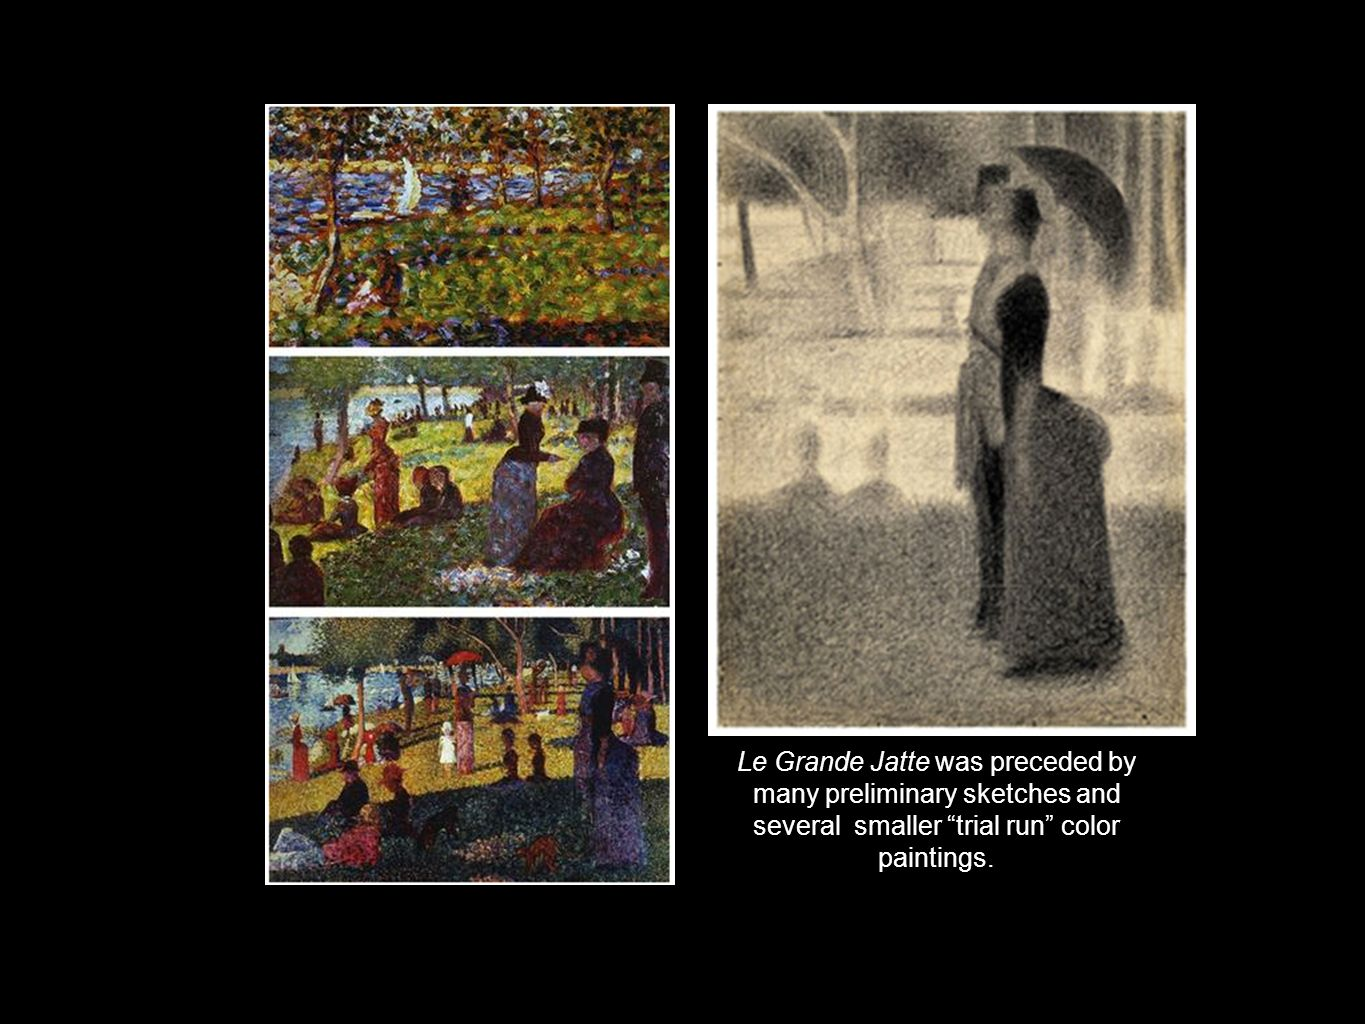 Le Grande Jatte was preceded by many preliminary sketches and several smaller trial run color paintings.